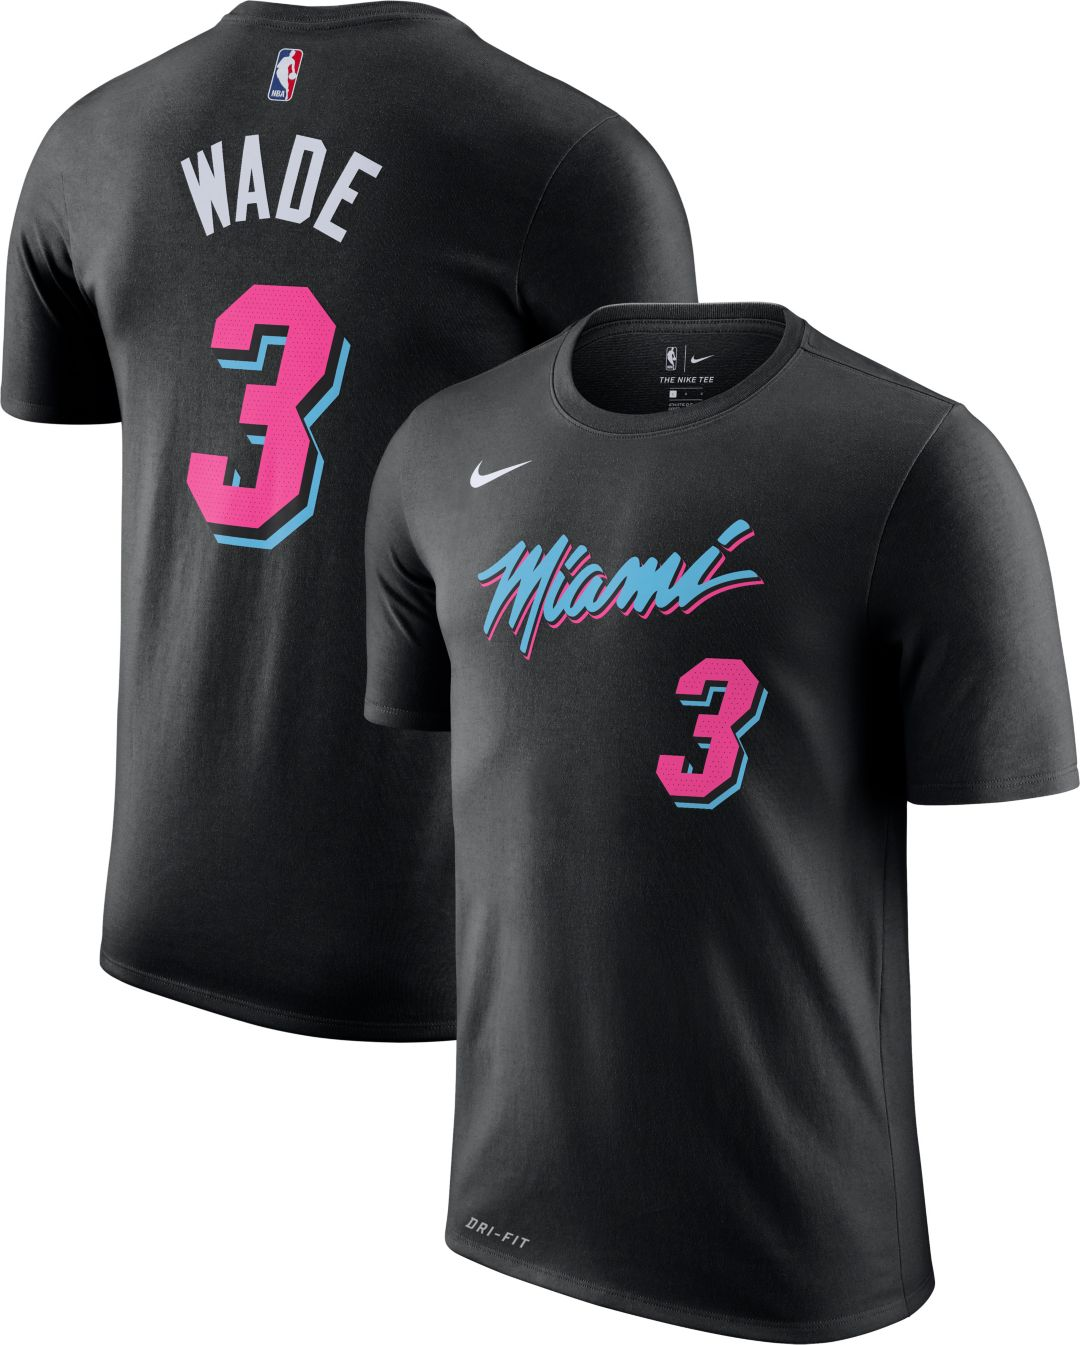 sale retailer 8a1a3 bea9b Nike Youth Miami Heat Dwyane Wade Dri-FIT City Edition T-Shirt